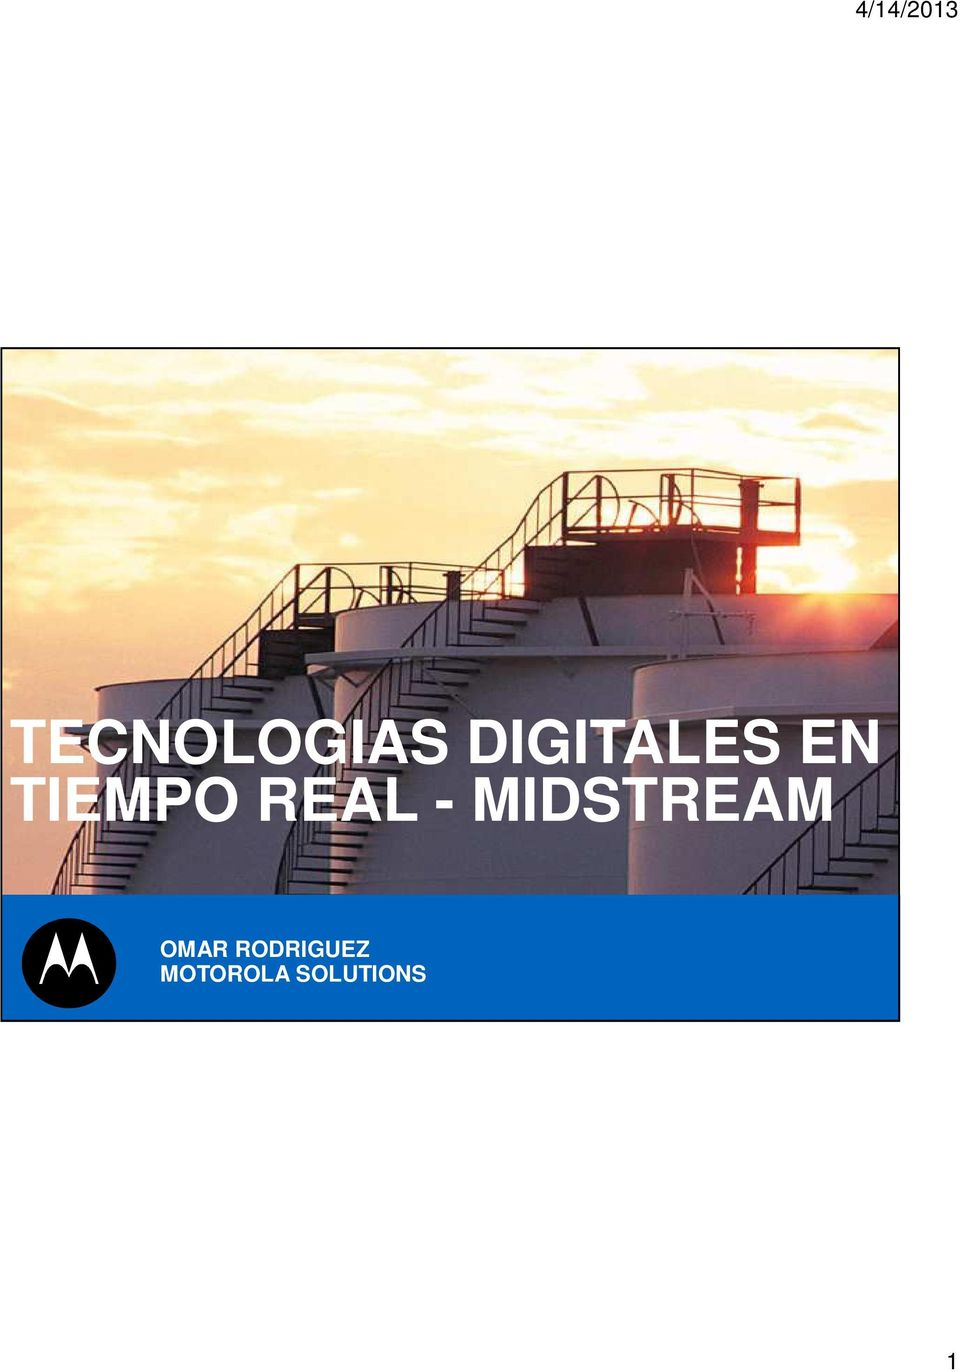 REAL - MIDSTREAM